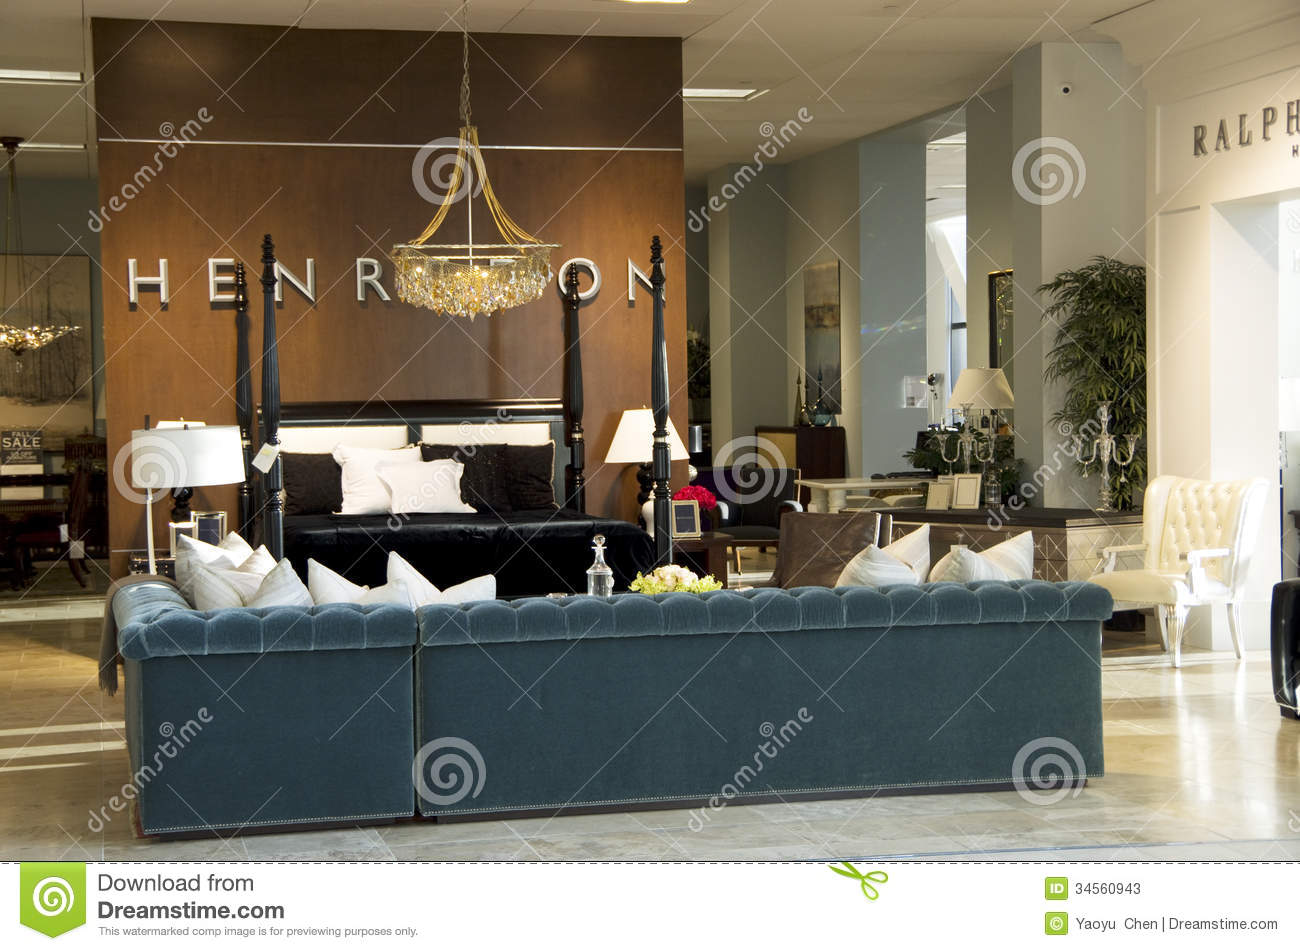 Luxury Furniture Stores Luxury Furniture Store Editorial Stock Photo Image 34560943